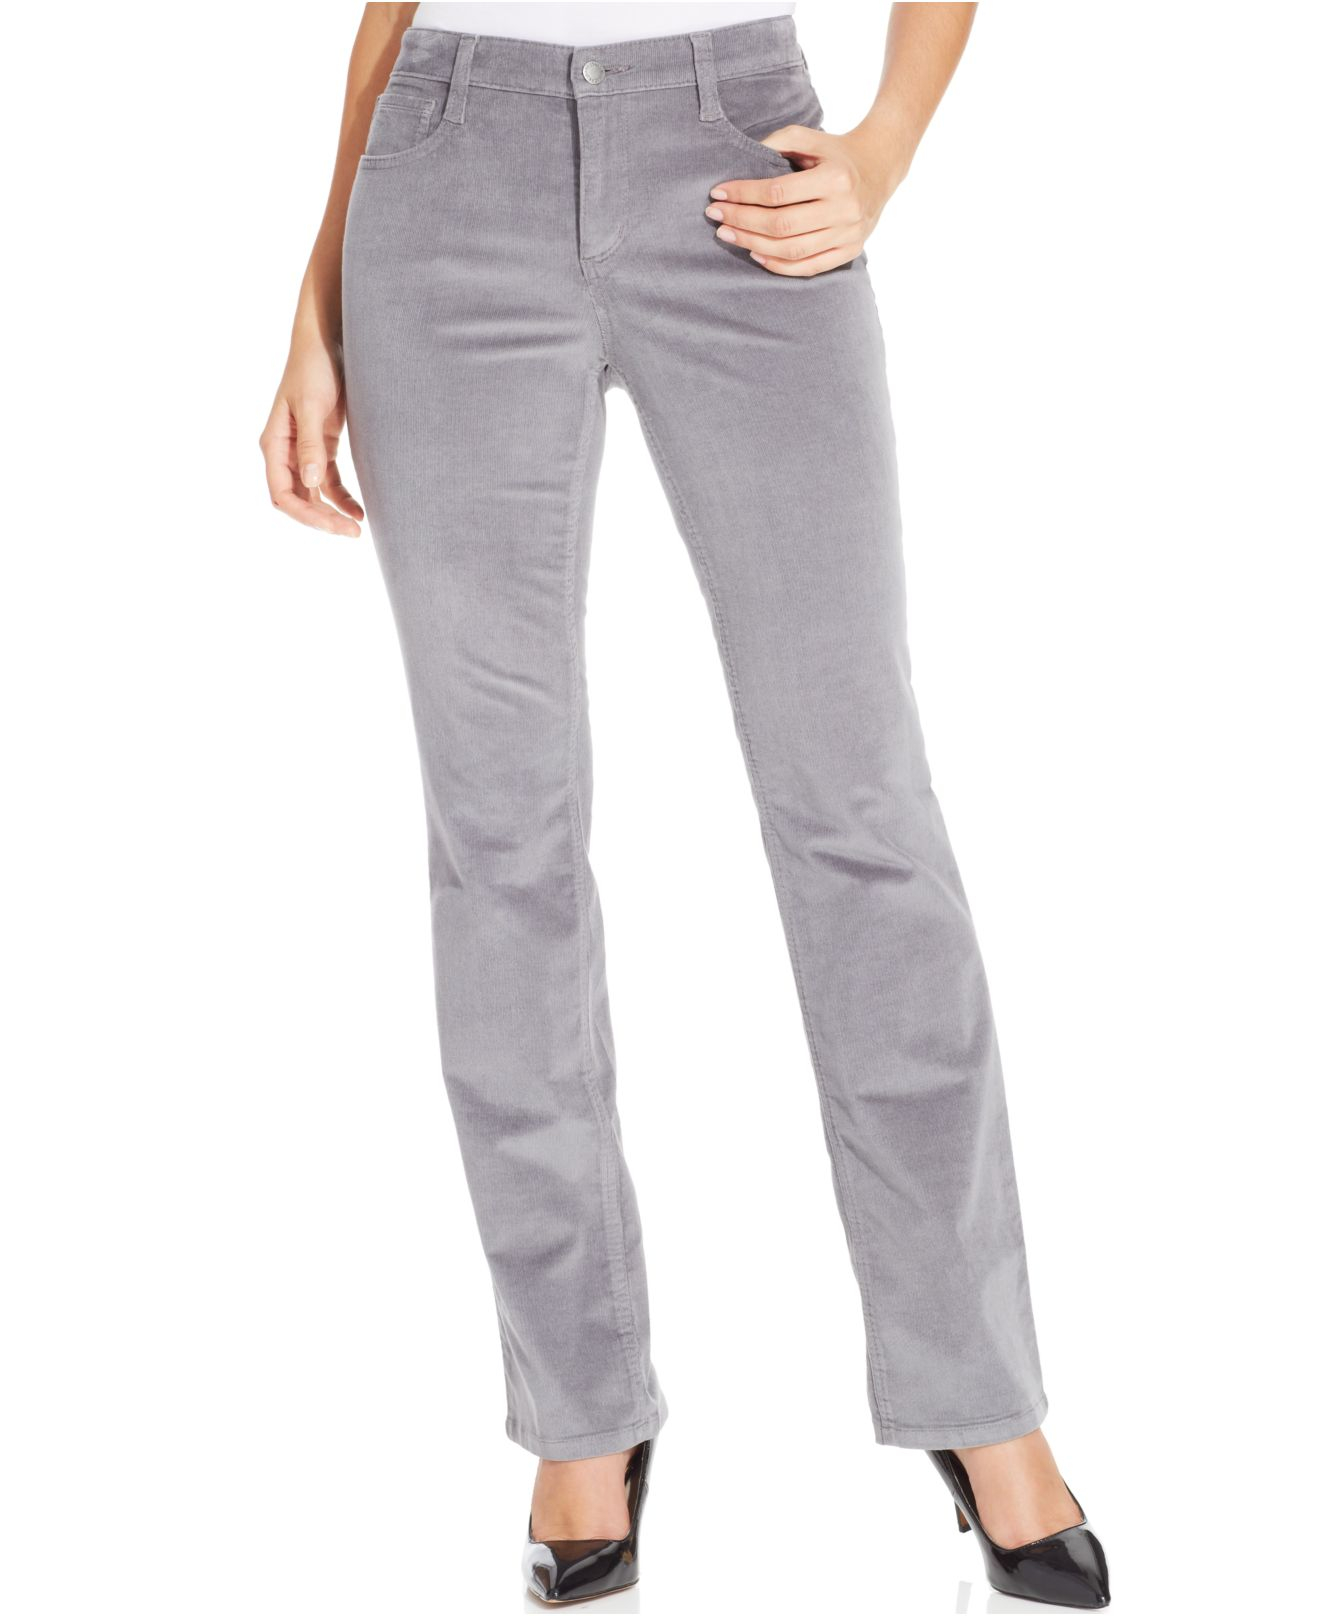 Shop Lands' End for quality Women's Petite Cords. Find a variety of women's petite corduroy leggings, straight leg cords, boot cut cords and more.